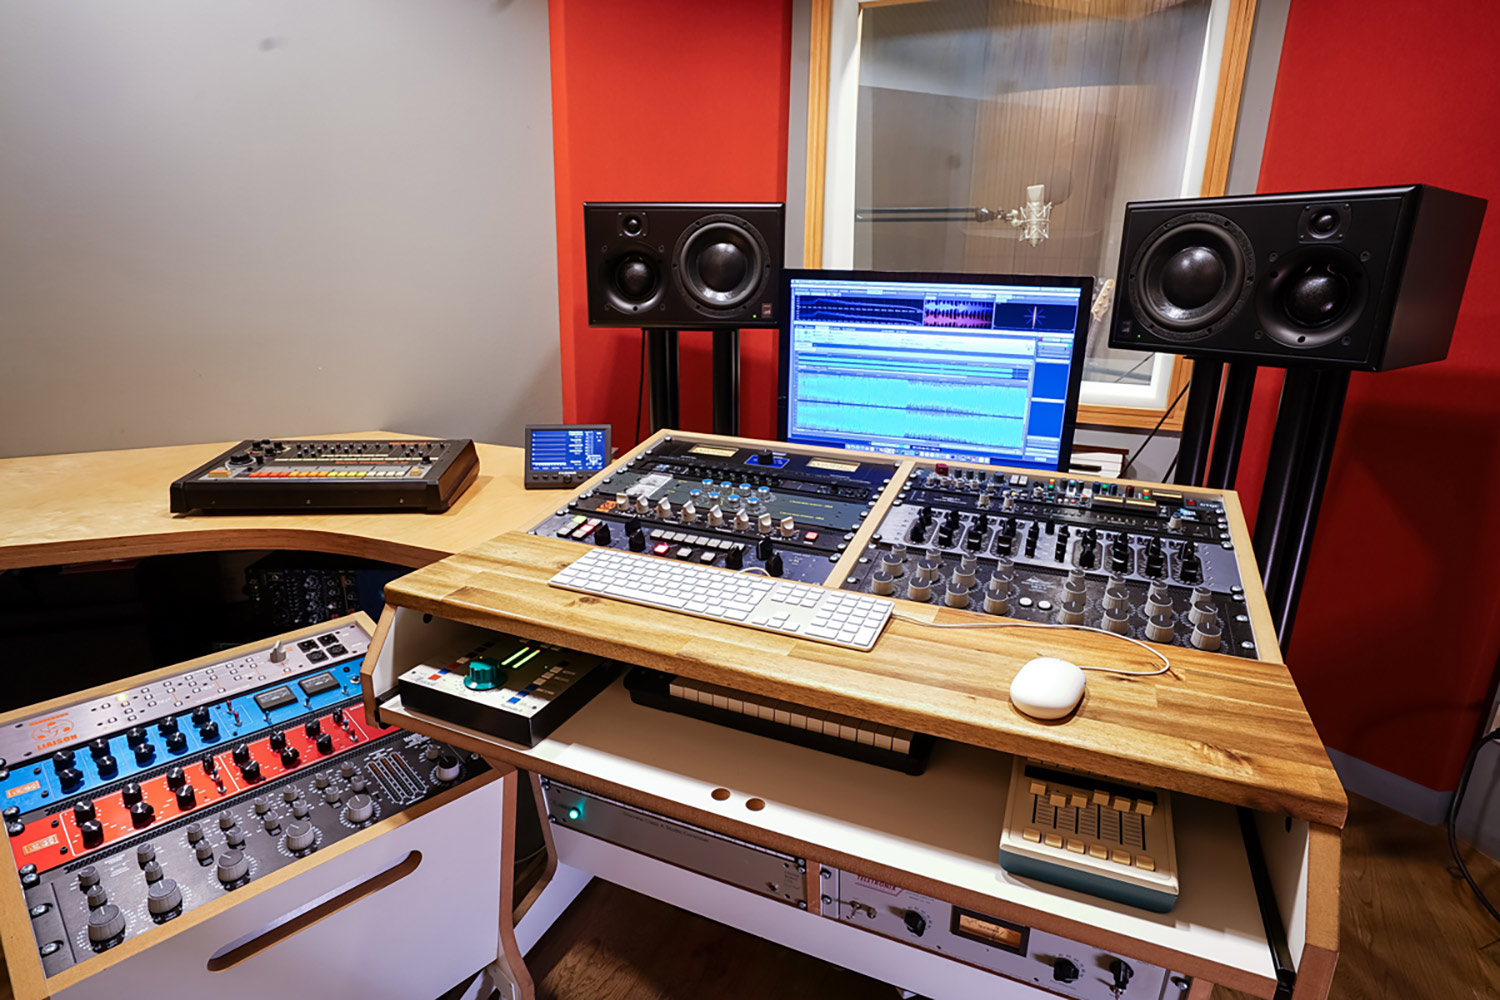 Sunshine Music has provided the Austrian music community with impeccable creative mastering and recording services since 1995. Designed and tuned by WSDG, Sunshine just upgraded their speakers to ATC Pro models. Mastering 3.